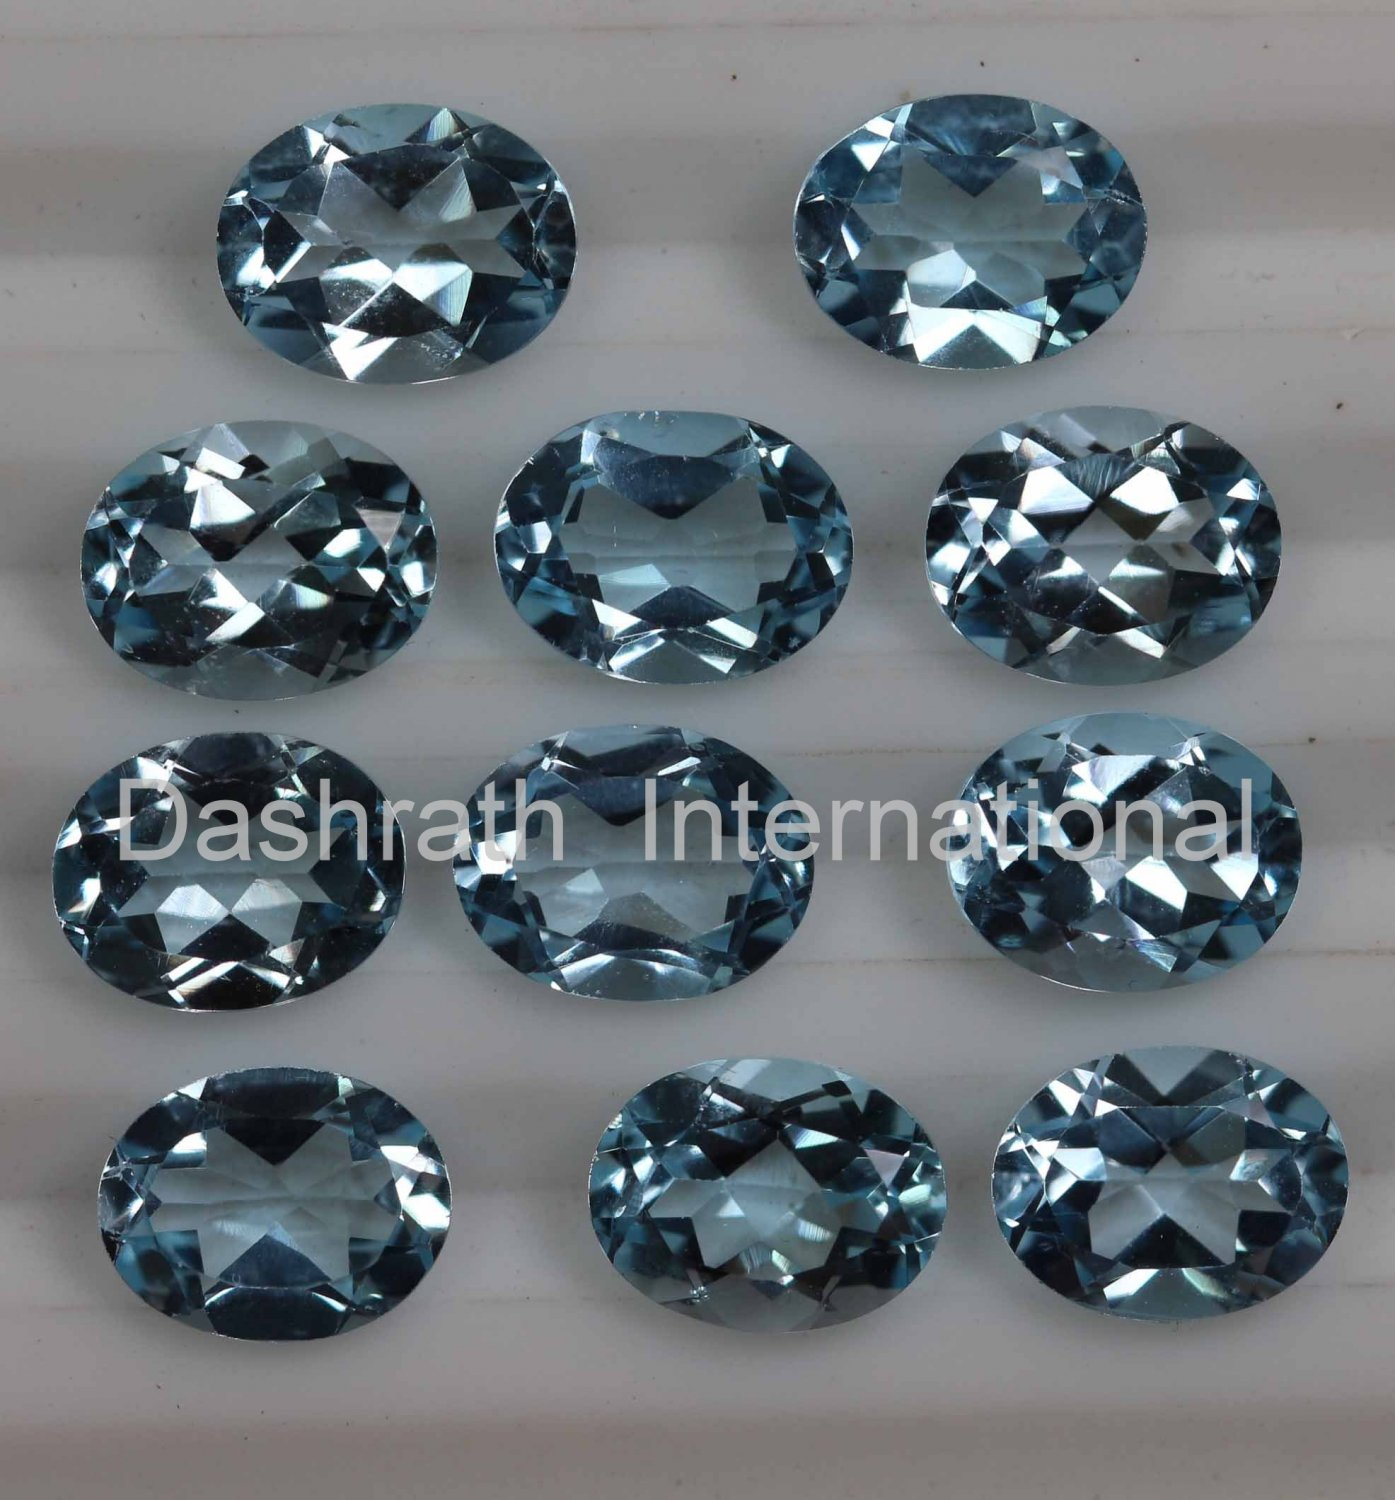 4x6mm  Natural Sky Blue Topaz Faceted Cut Oval  100 Pieces Lot  Top Quality Loose Gemstone